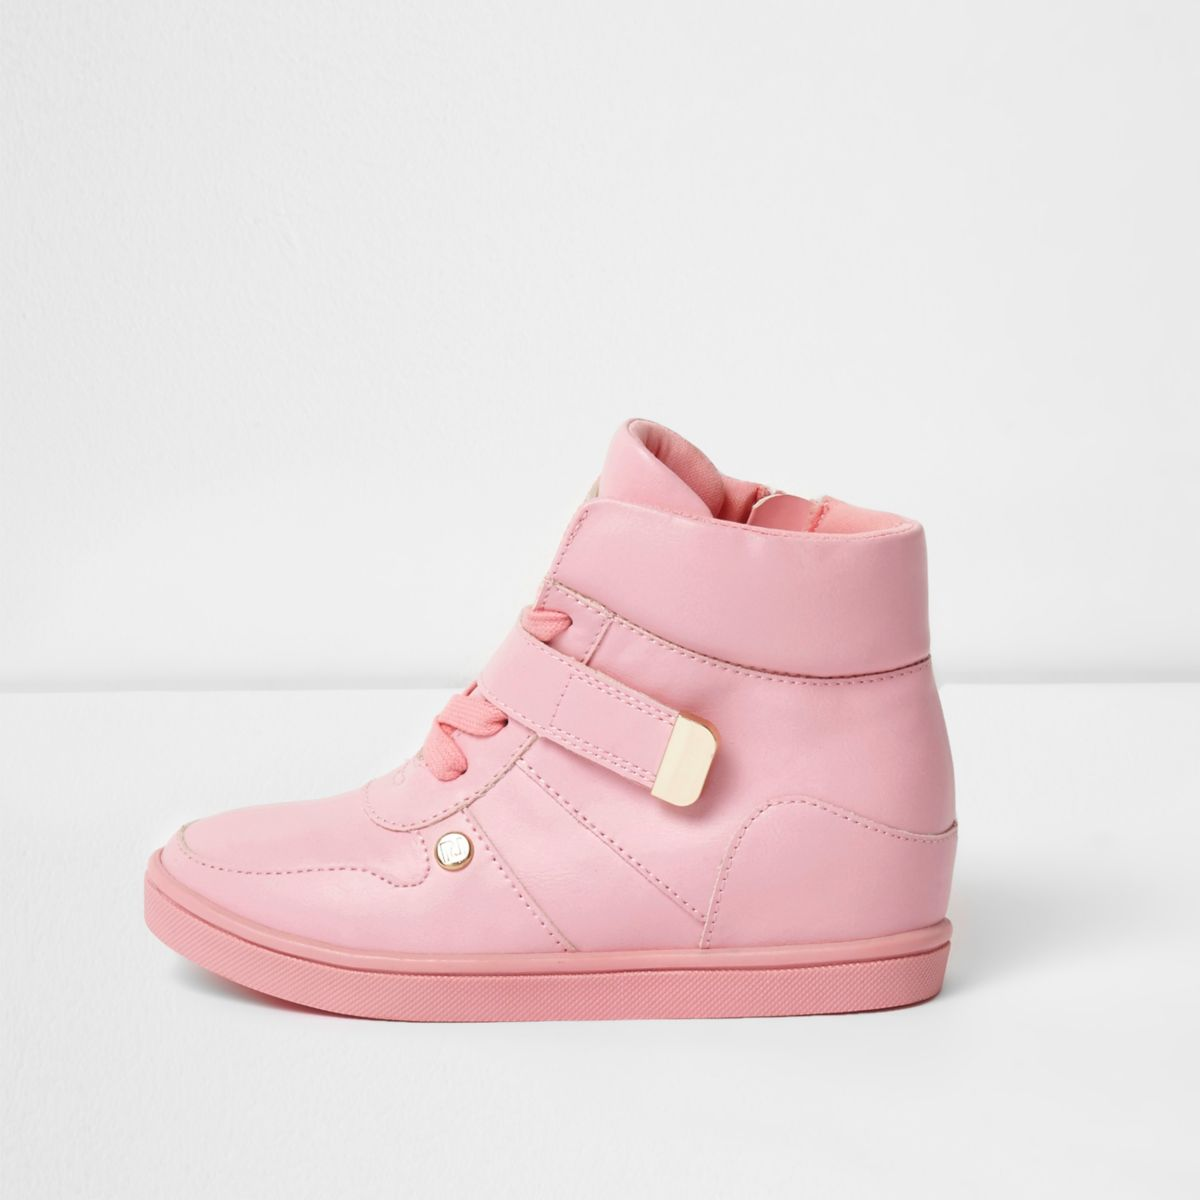 Girls pink high top wedge trainers